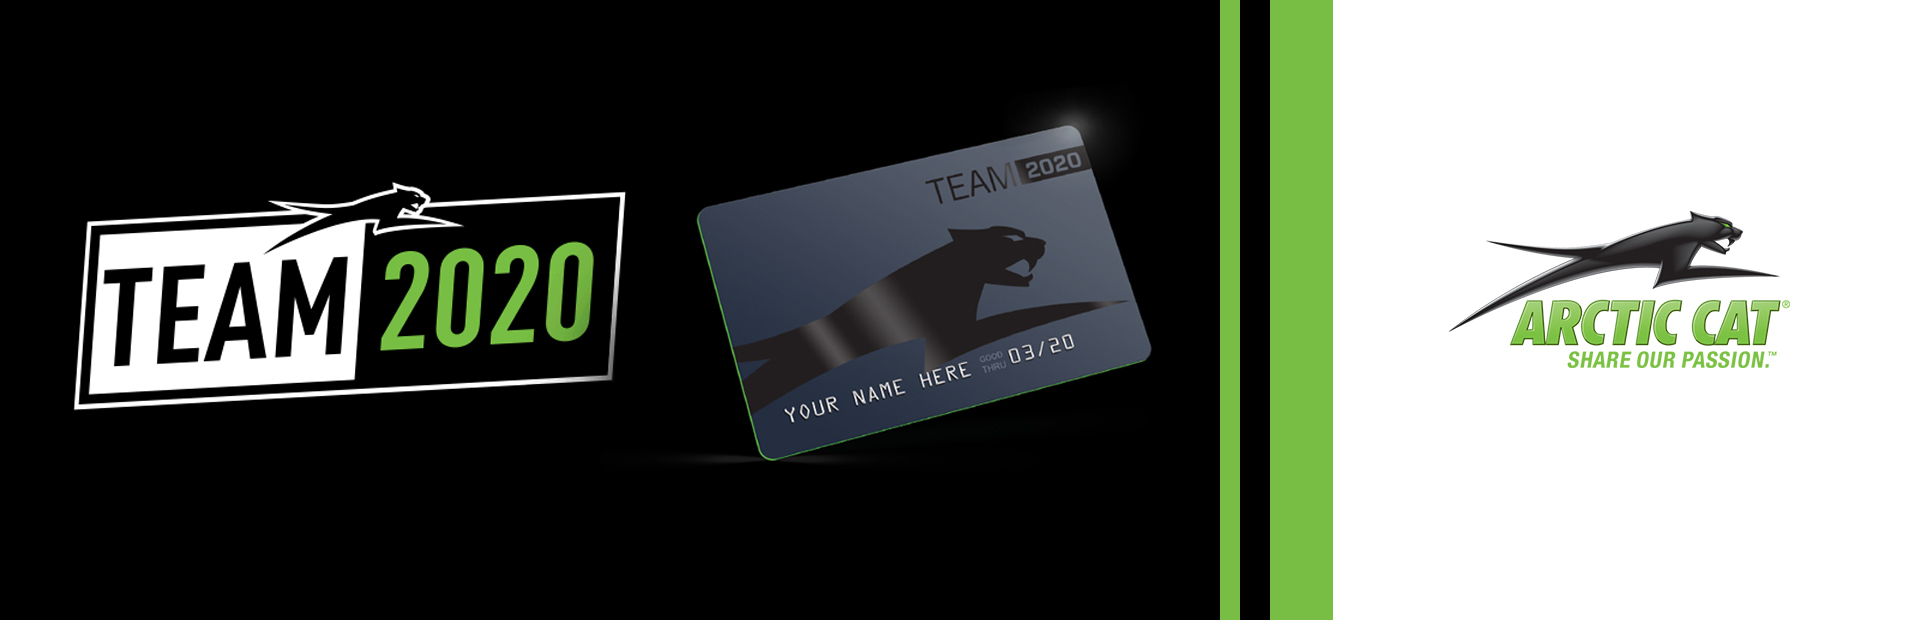 Arctic Cat: Team 2020 Card